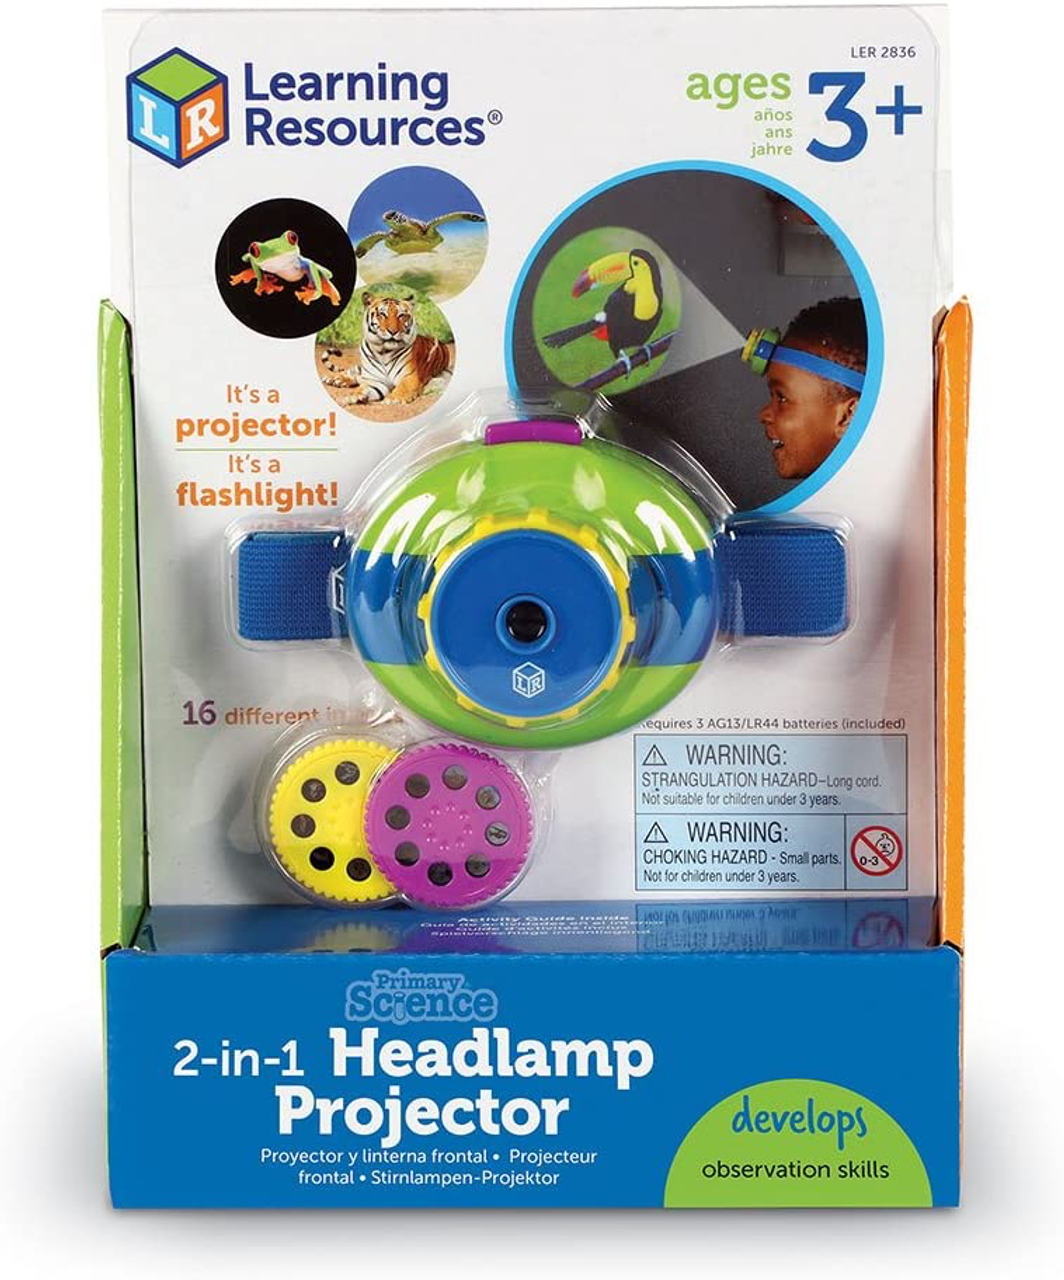 2-in-1 Headlamp Projector